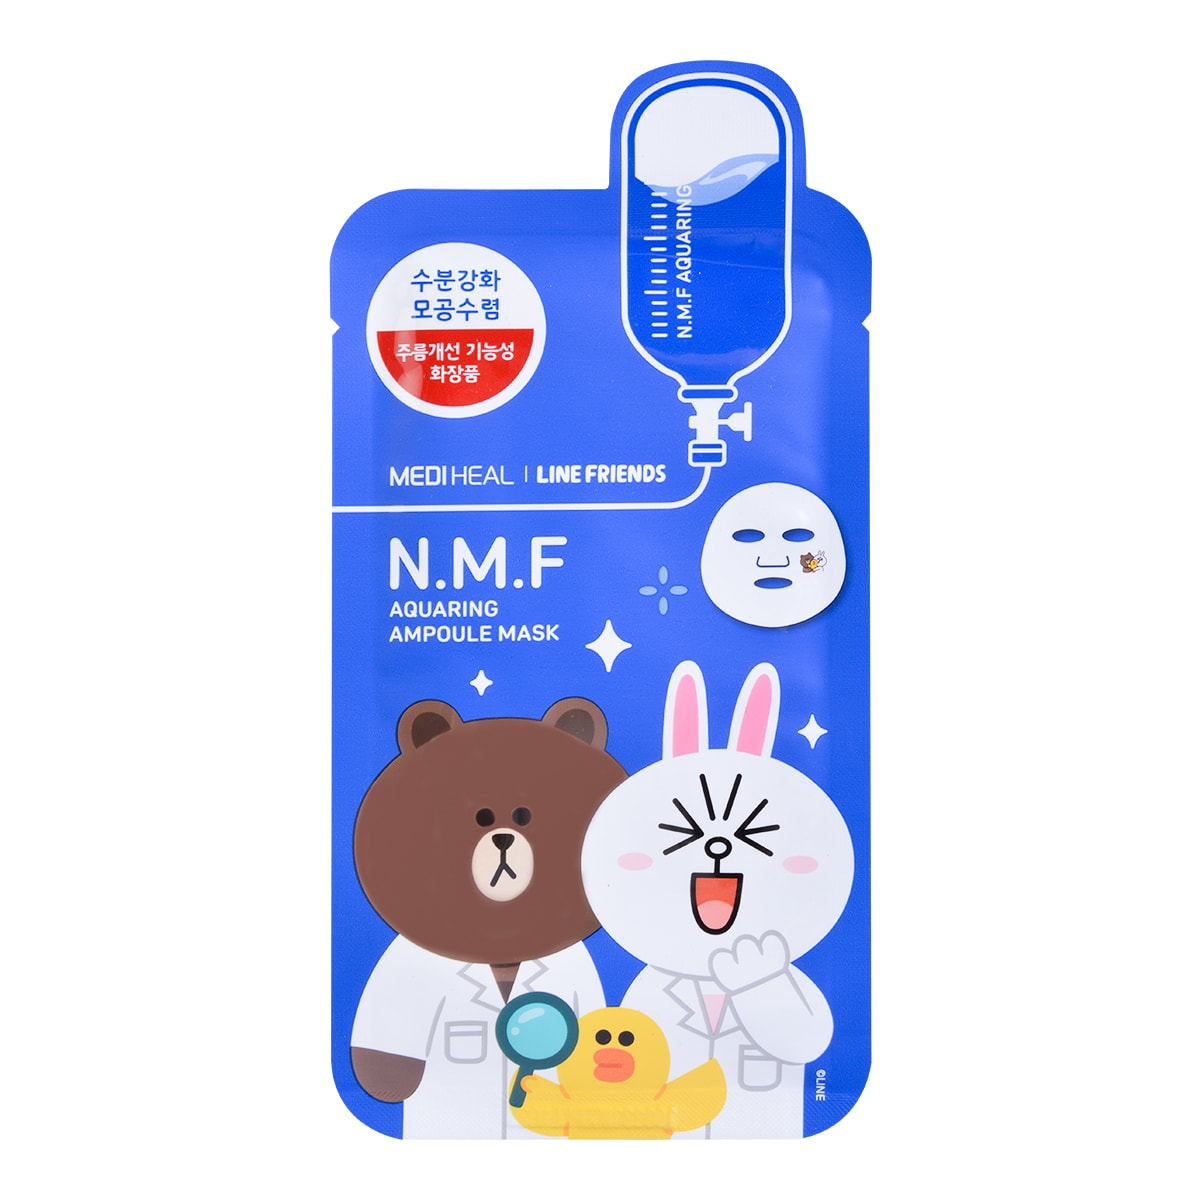 Yamibuy.com:Customer reviews:MEDIHEAL X LINE FRIENDS N.M.F Aquaring Ampoule Mask 1sheet